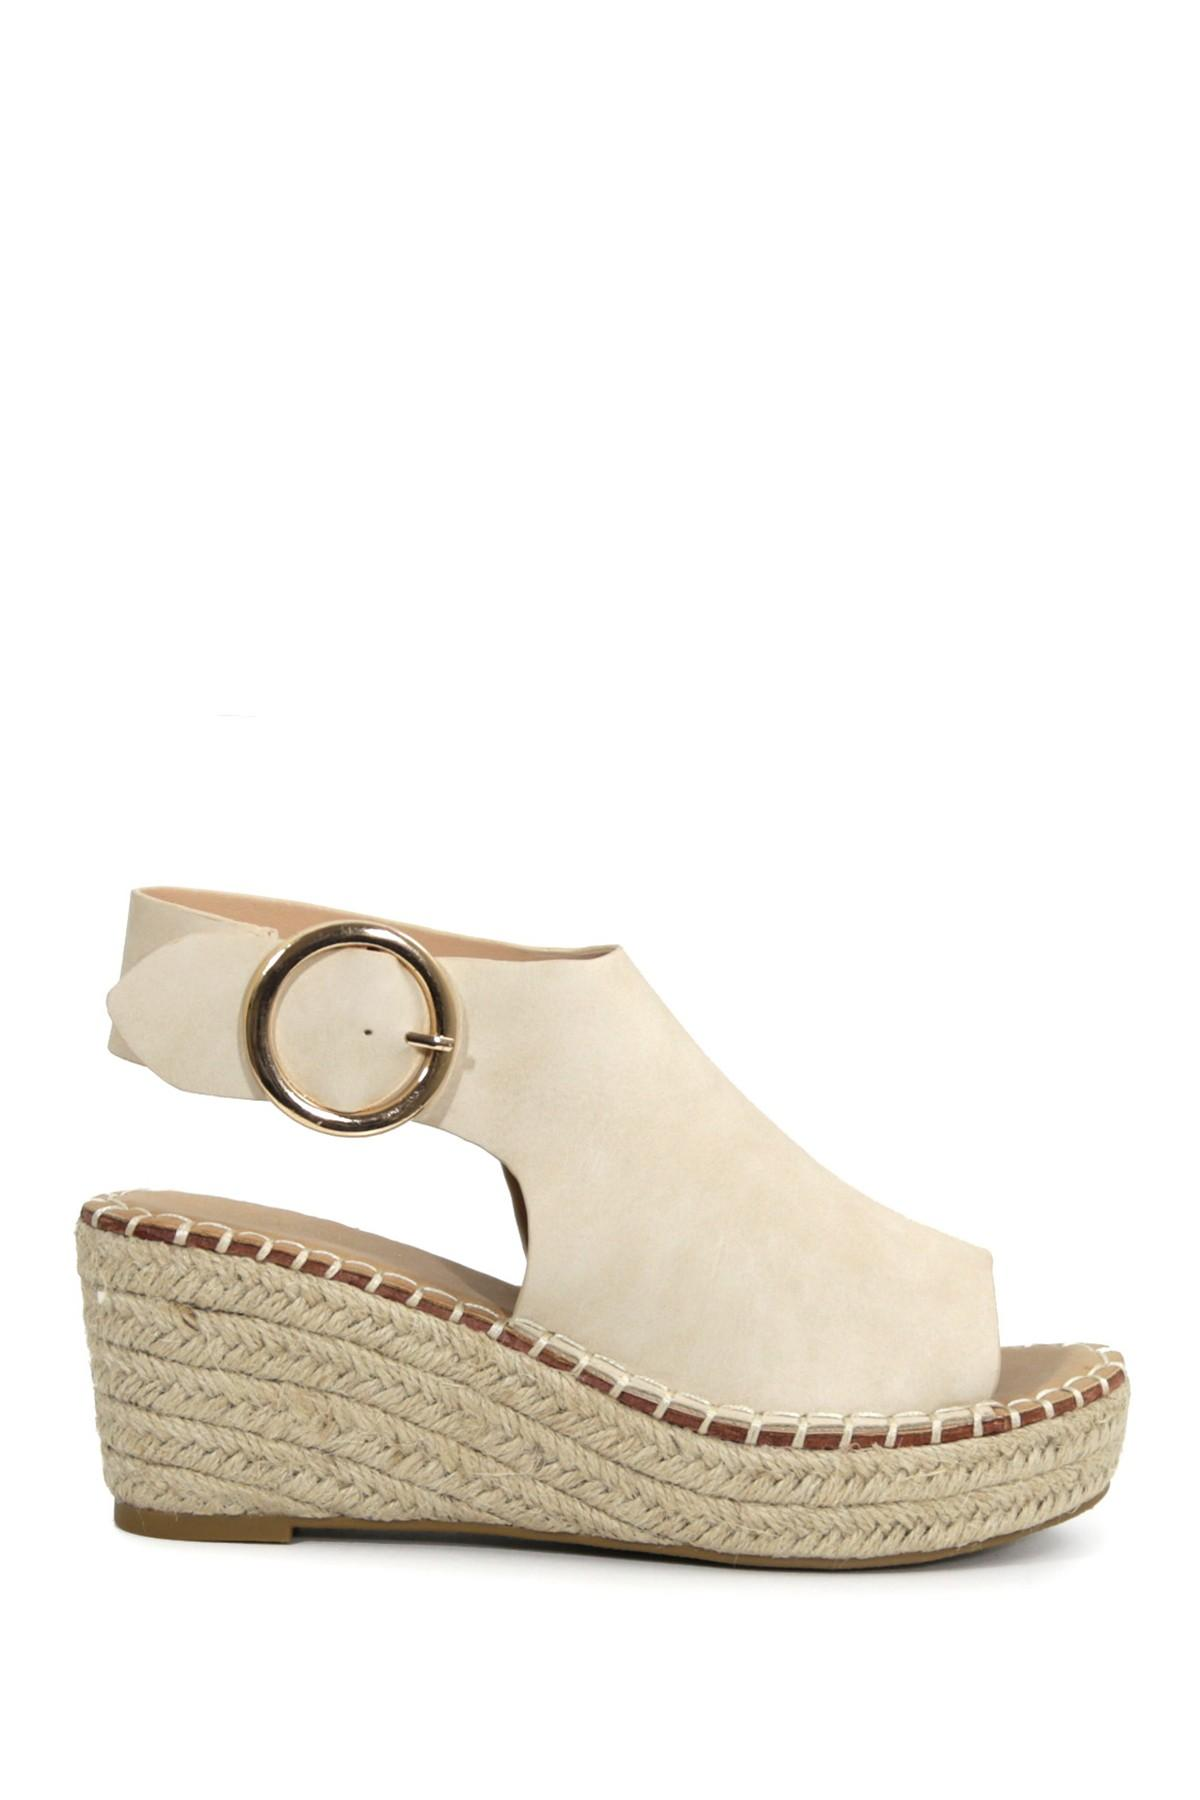 2018 sneakers utterly stylish fast delivery Catherine Malandrino Cirkly Espadrille Wedge Sandal in Natural - Lyst